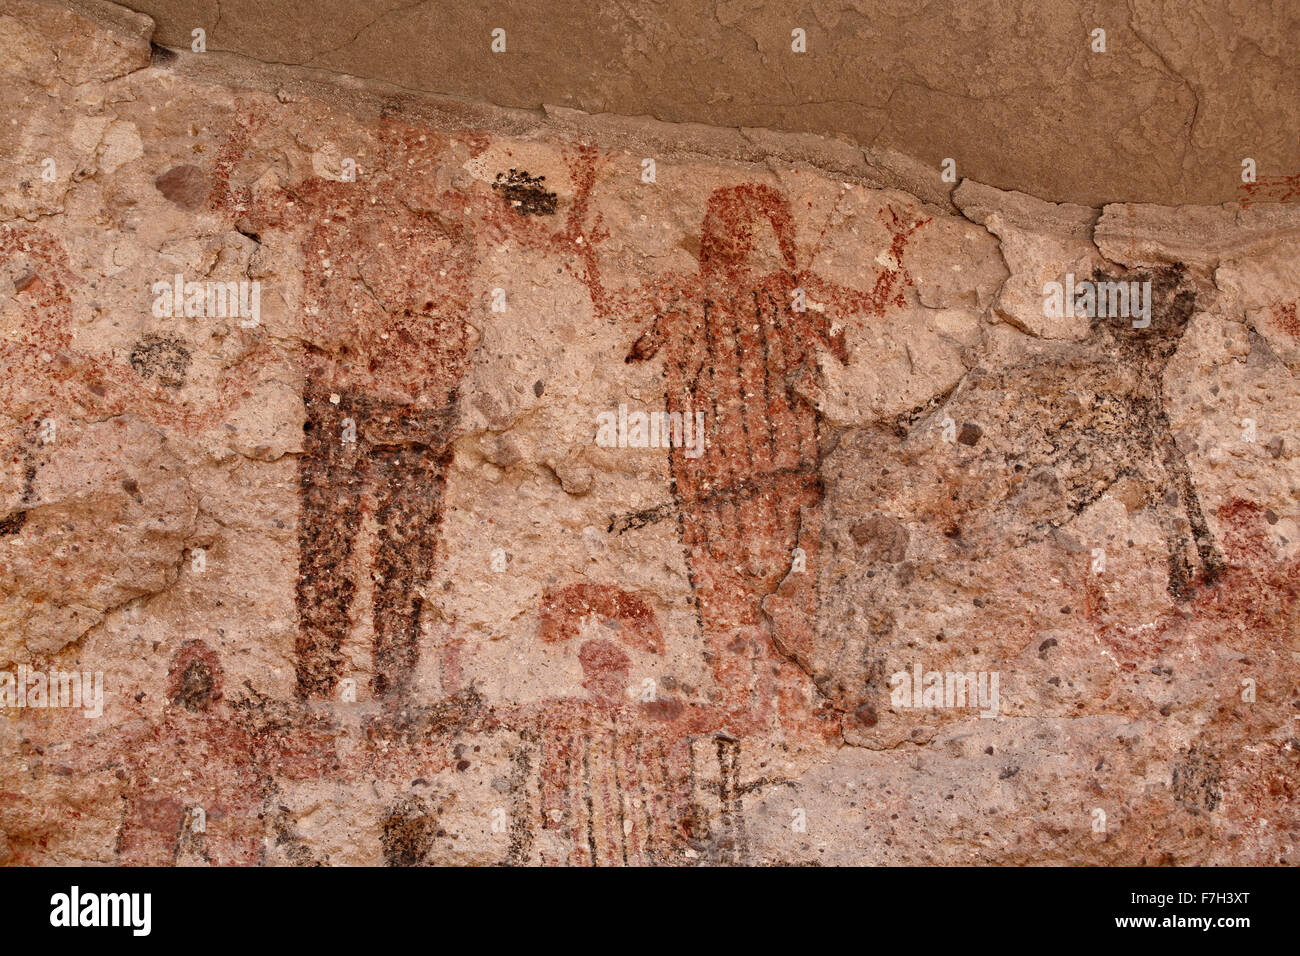 pr5398-D. petroglyphs and rock paintings of Santa Marta, which depict people, animals (deer, rabbits, fish, more). - Stock Image